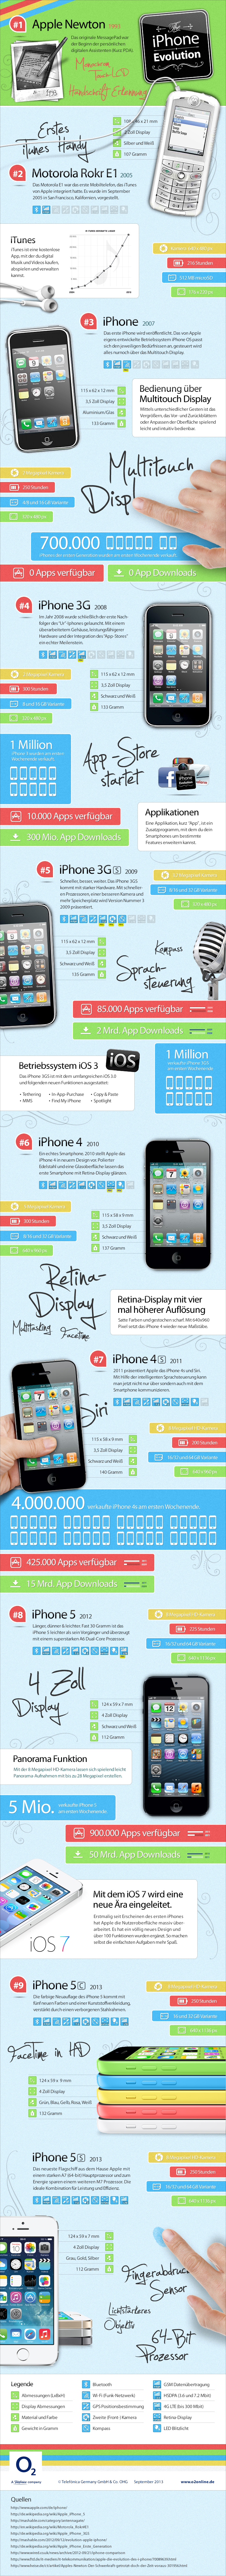 Die iPhone-Evolution als Infografik.